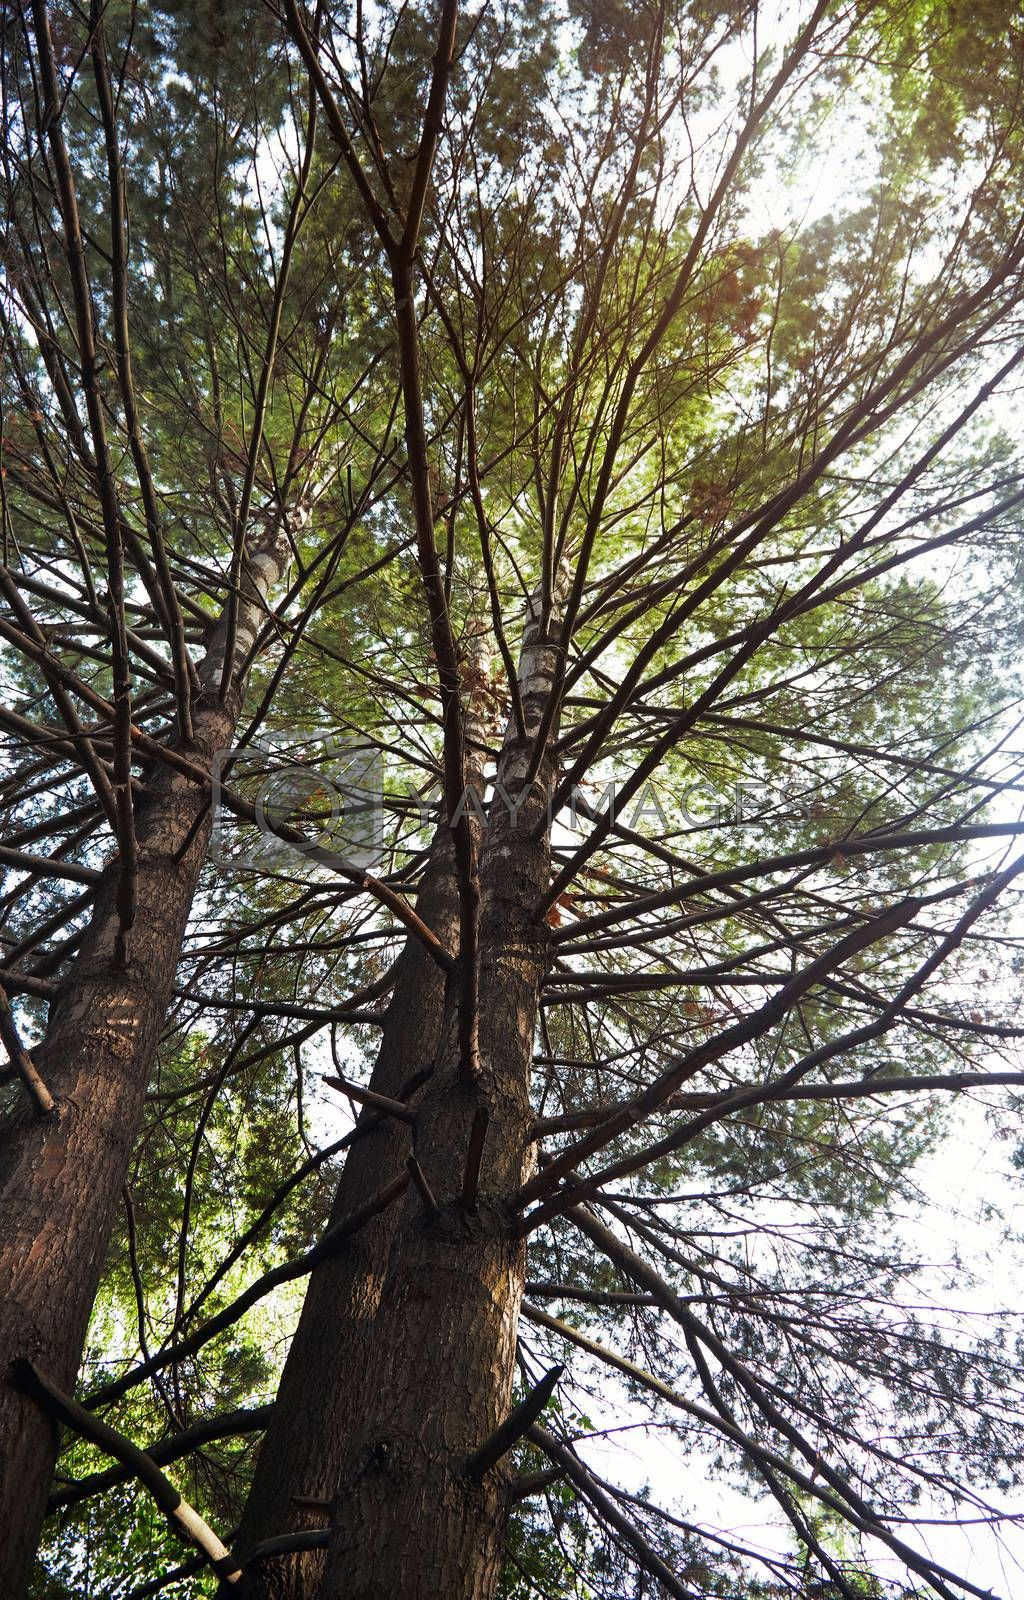 Pines in a wild forest. Vertical photo